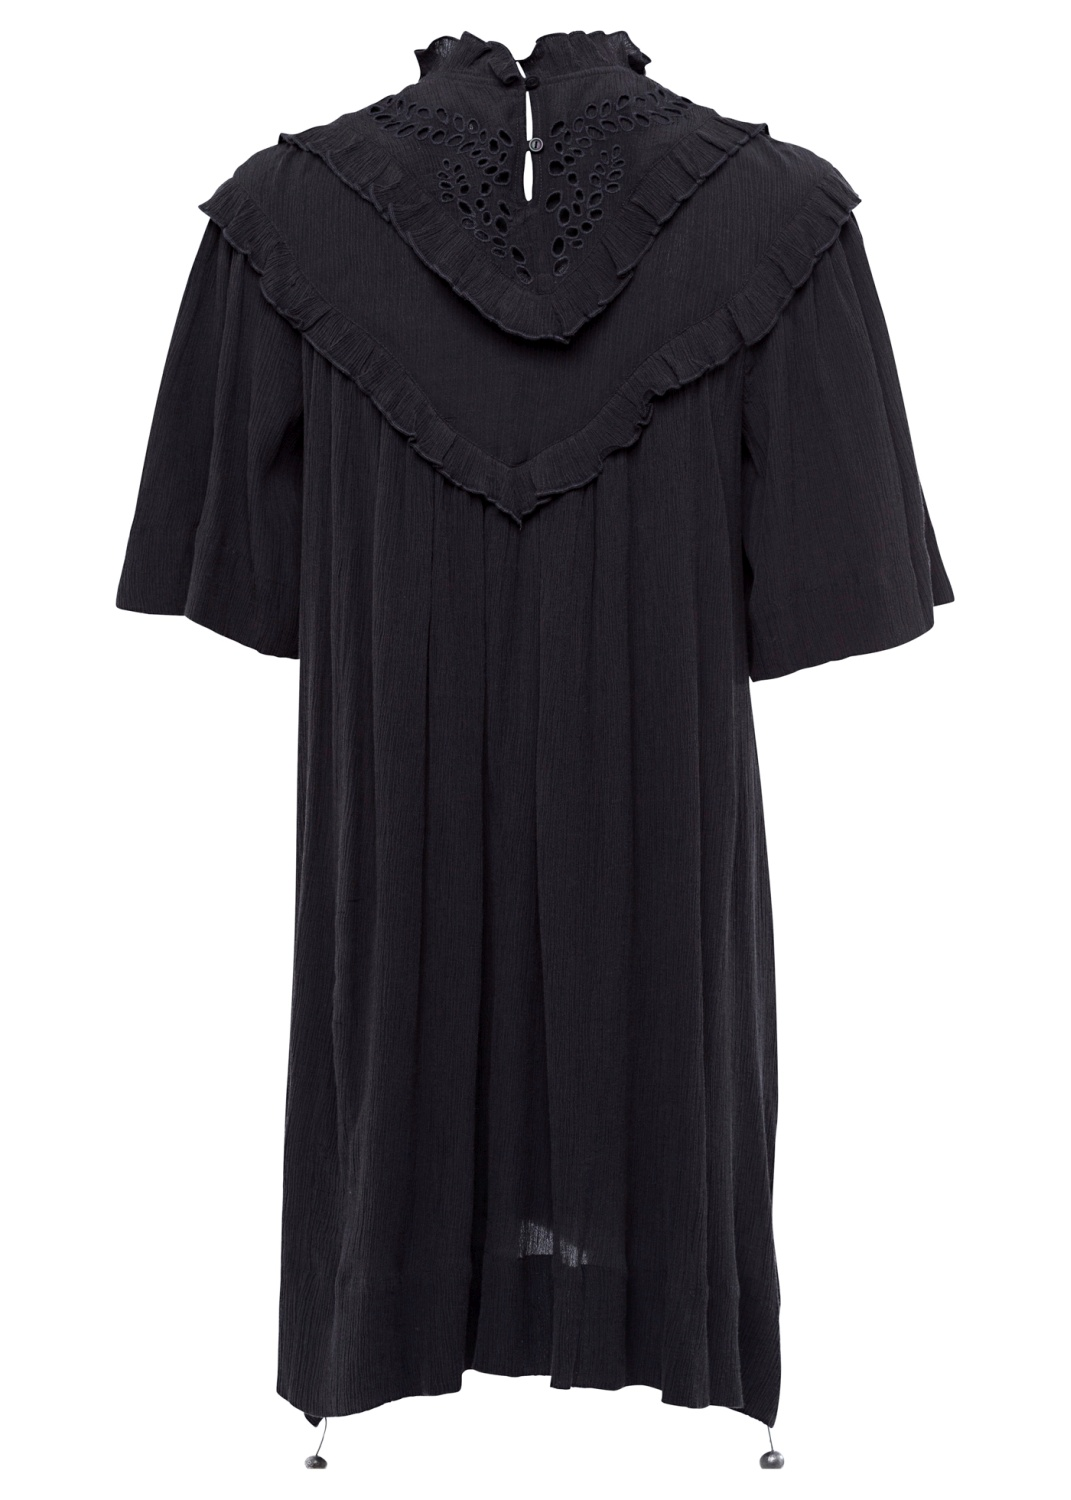 INALIO Dress image number 1